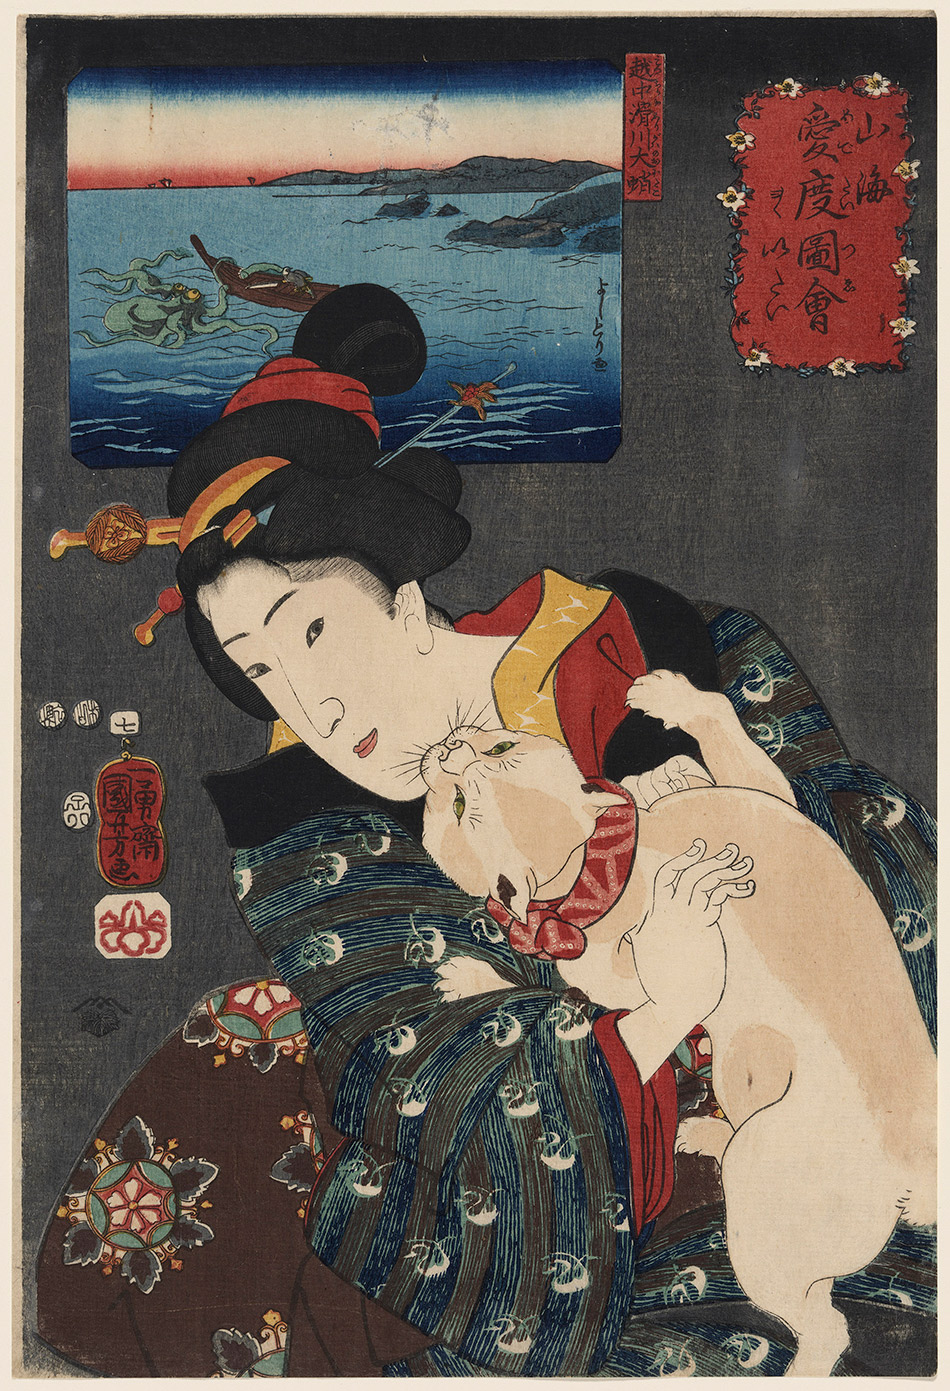 museum-of-fine-arts-boston_08.-Oh,-ouch-Giant-Octopus-from-the-Nameri-River-in-Etchu_Utagawa-Kuniyoshi_w